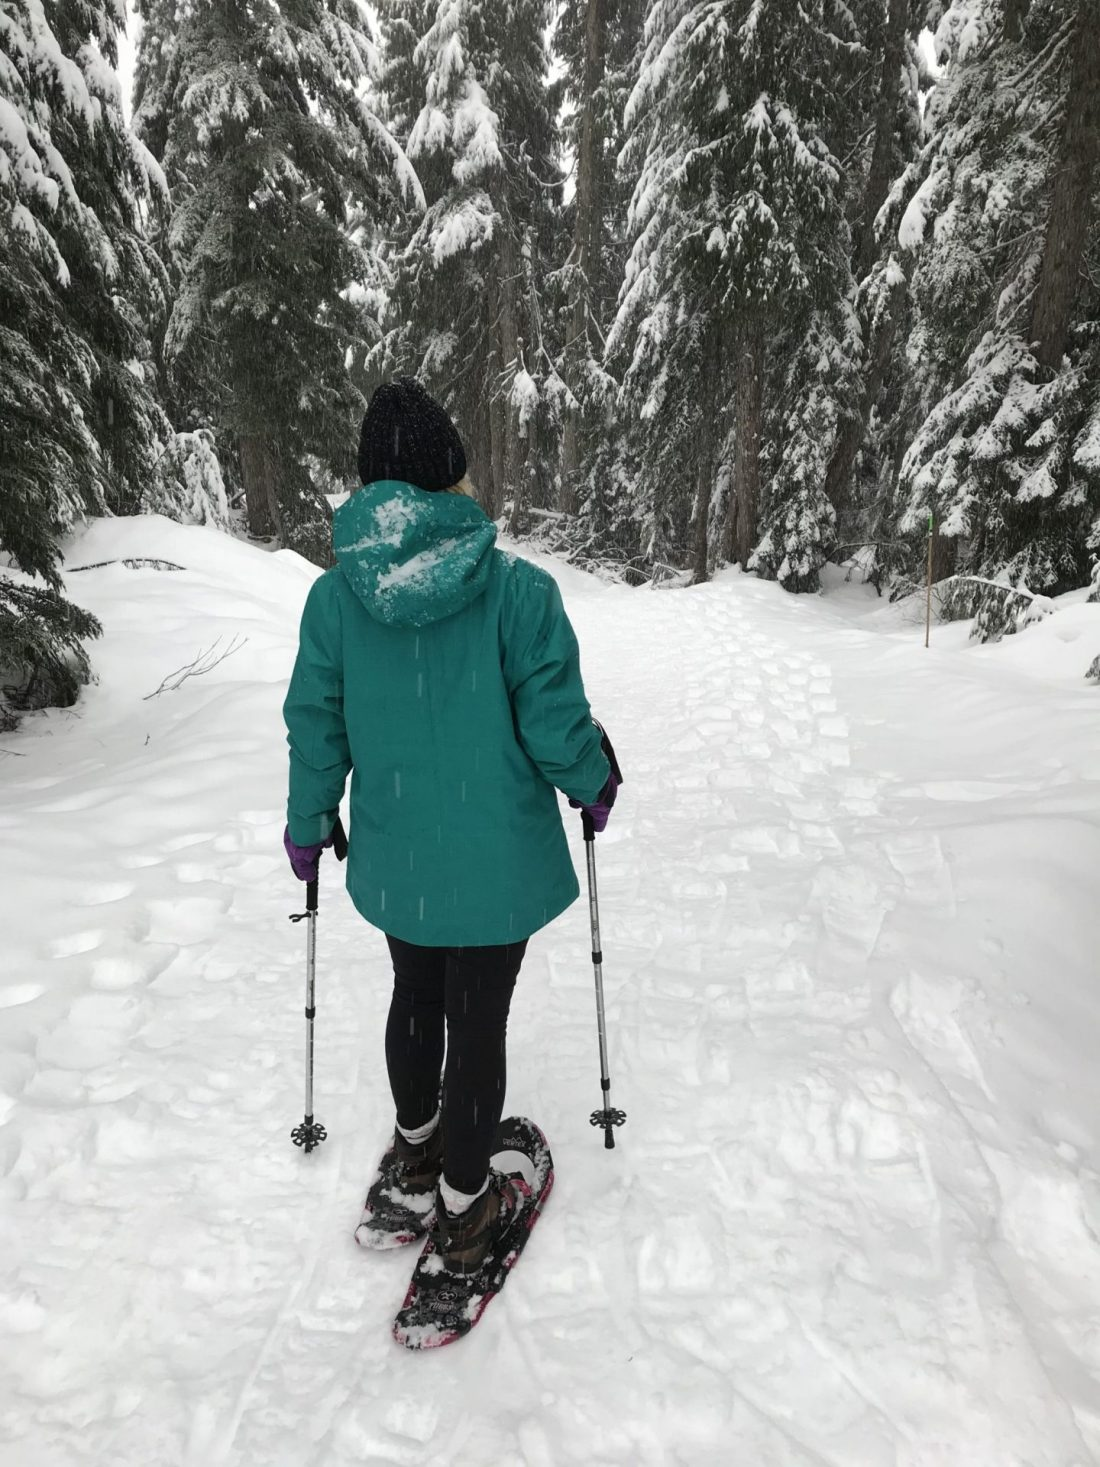 Snowshow trail on Mount Seymour, Vancouver